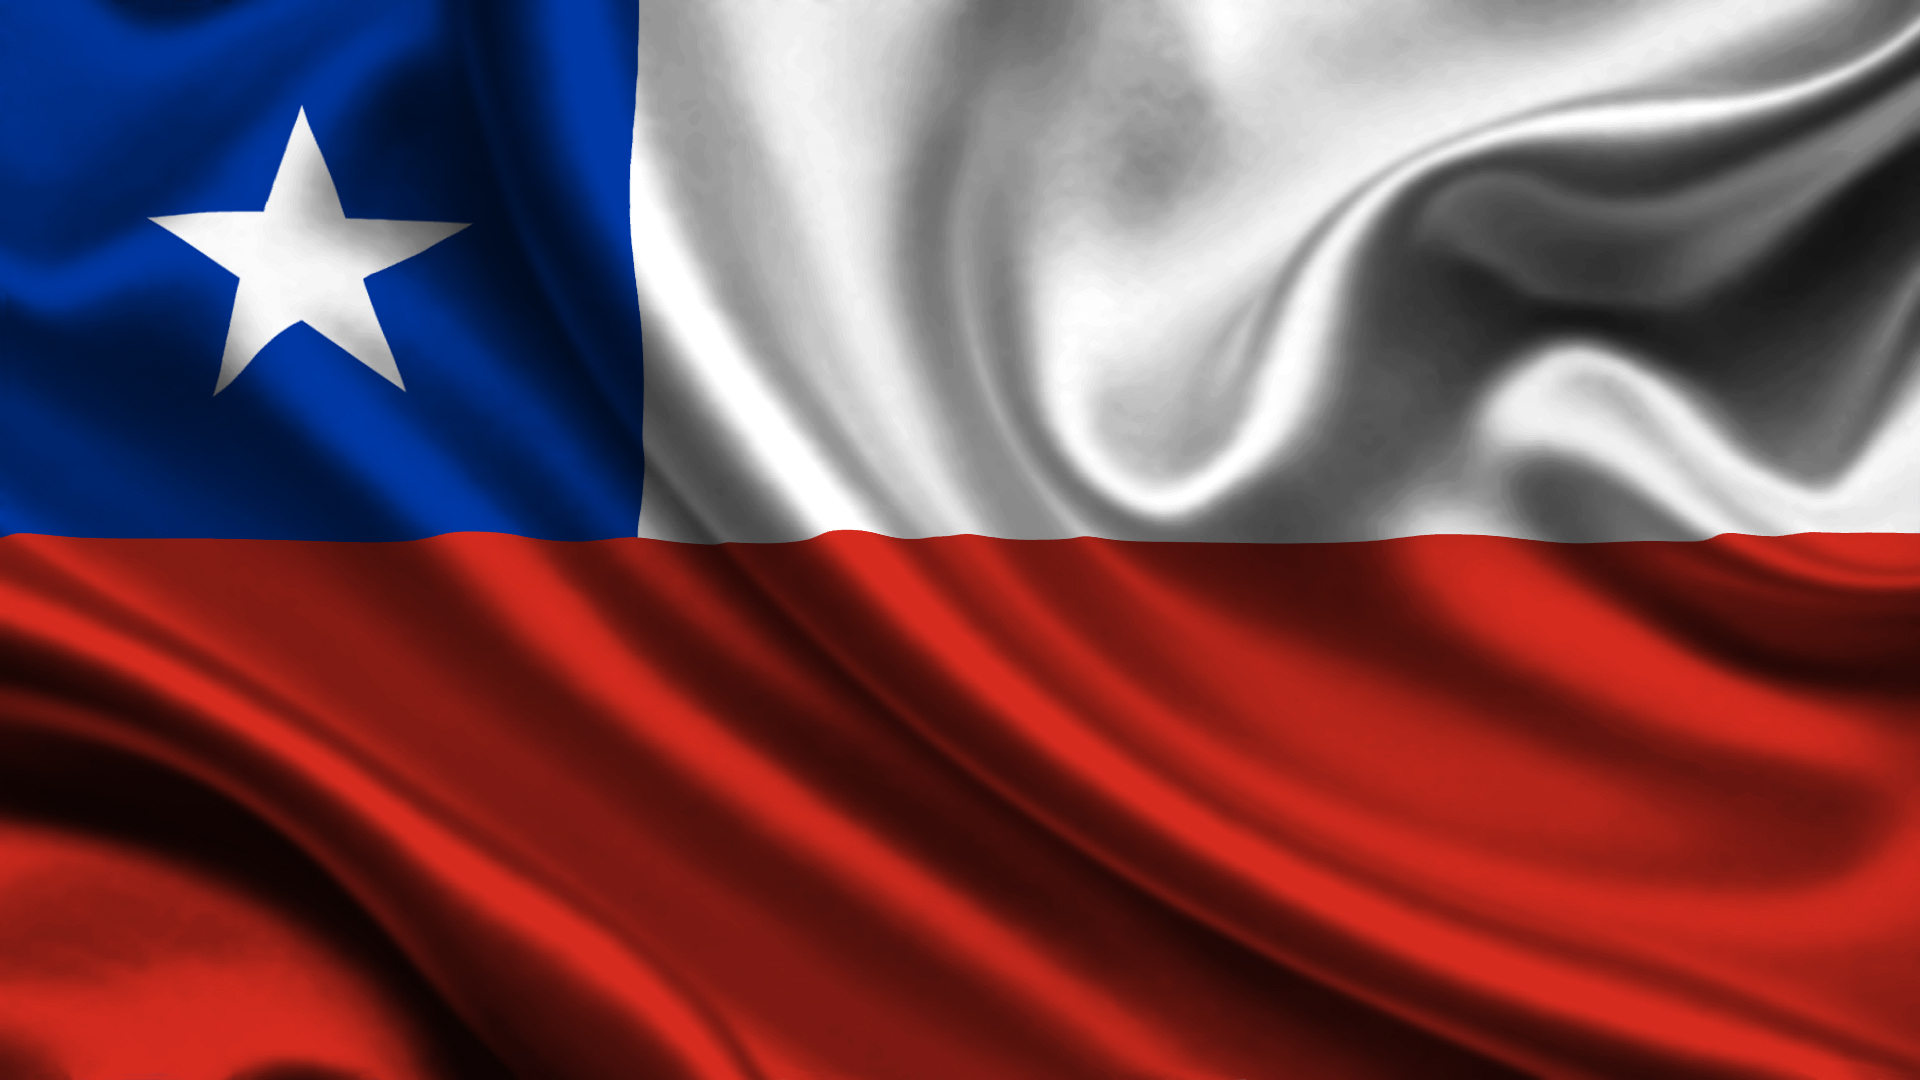 Images of Flag Of Chile   1920x1080